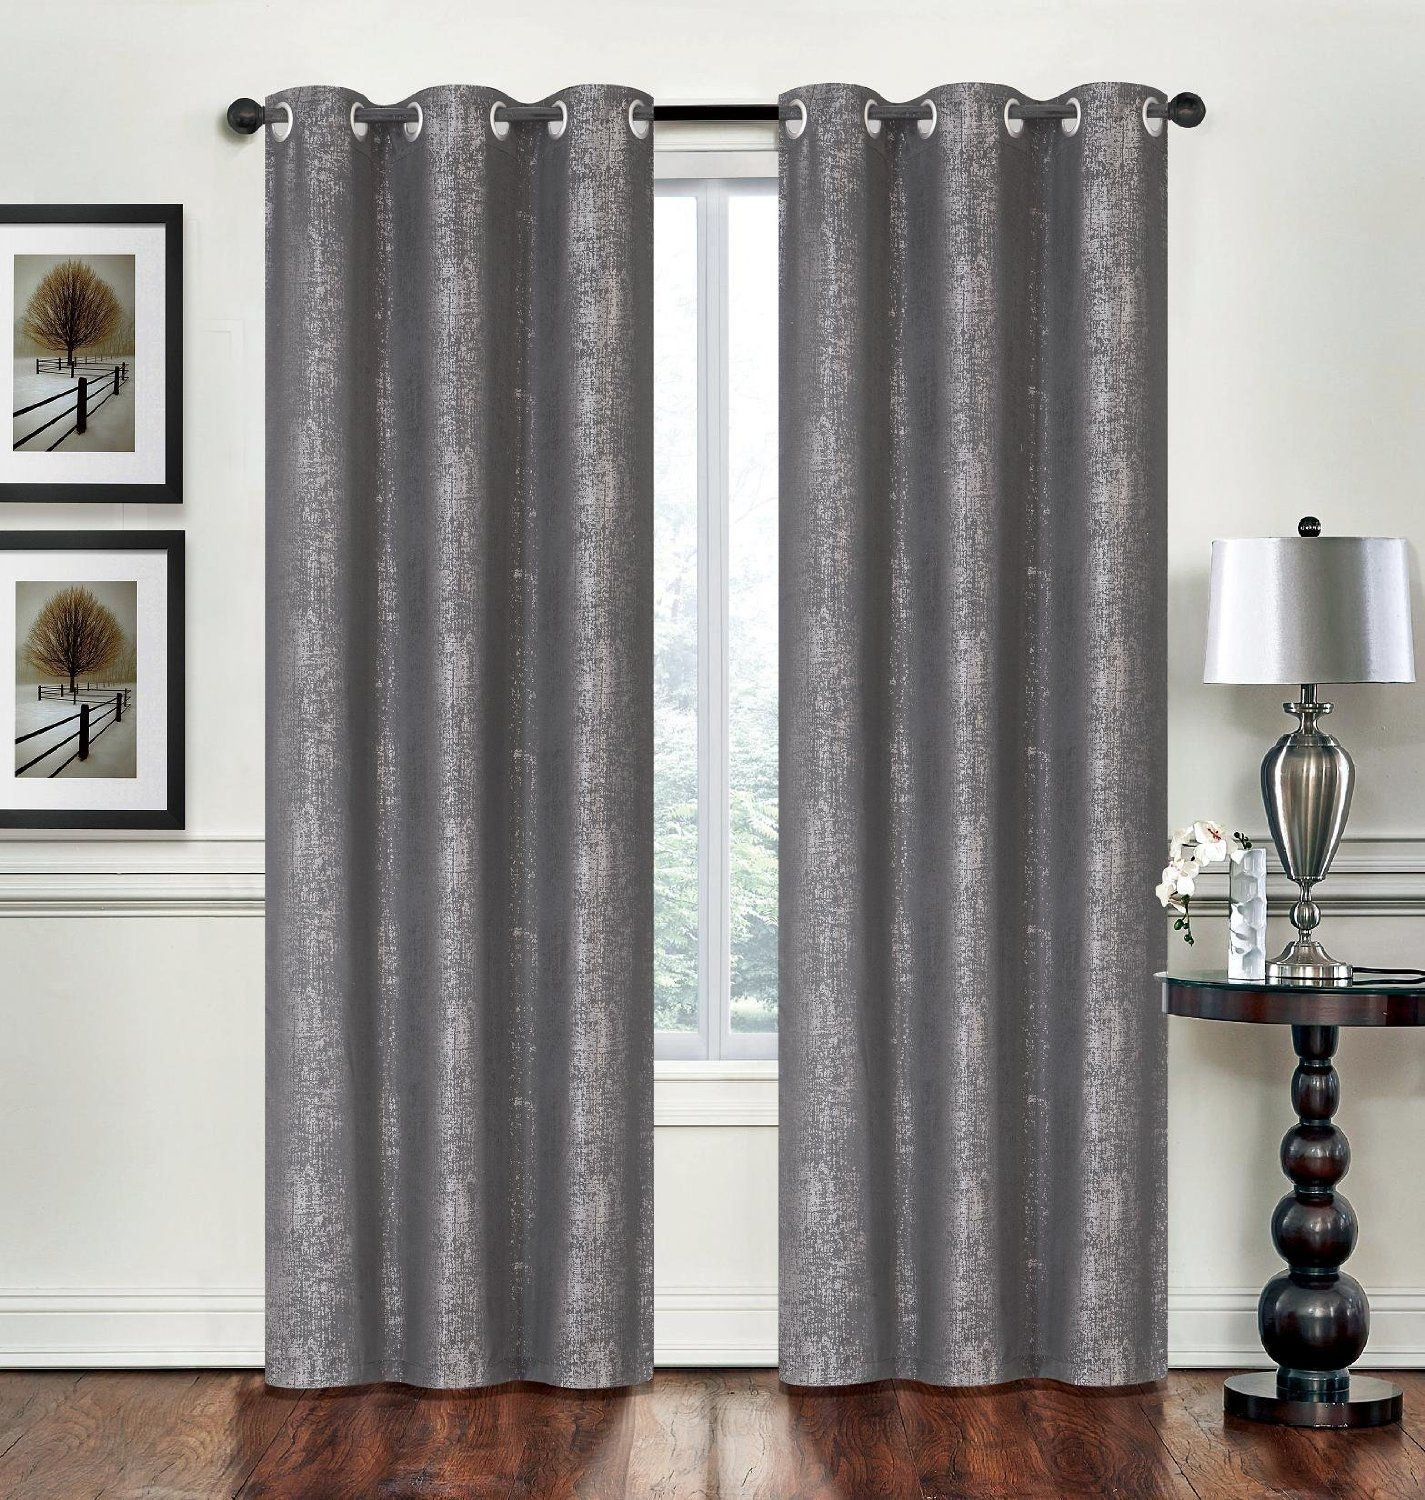 Robot Check Drapery Panels Curtains 95 Inch Curtains